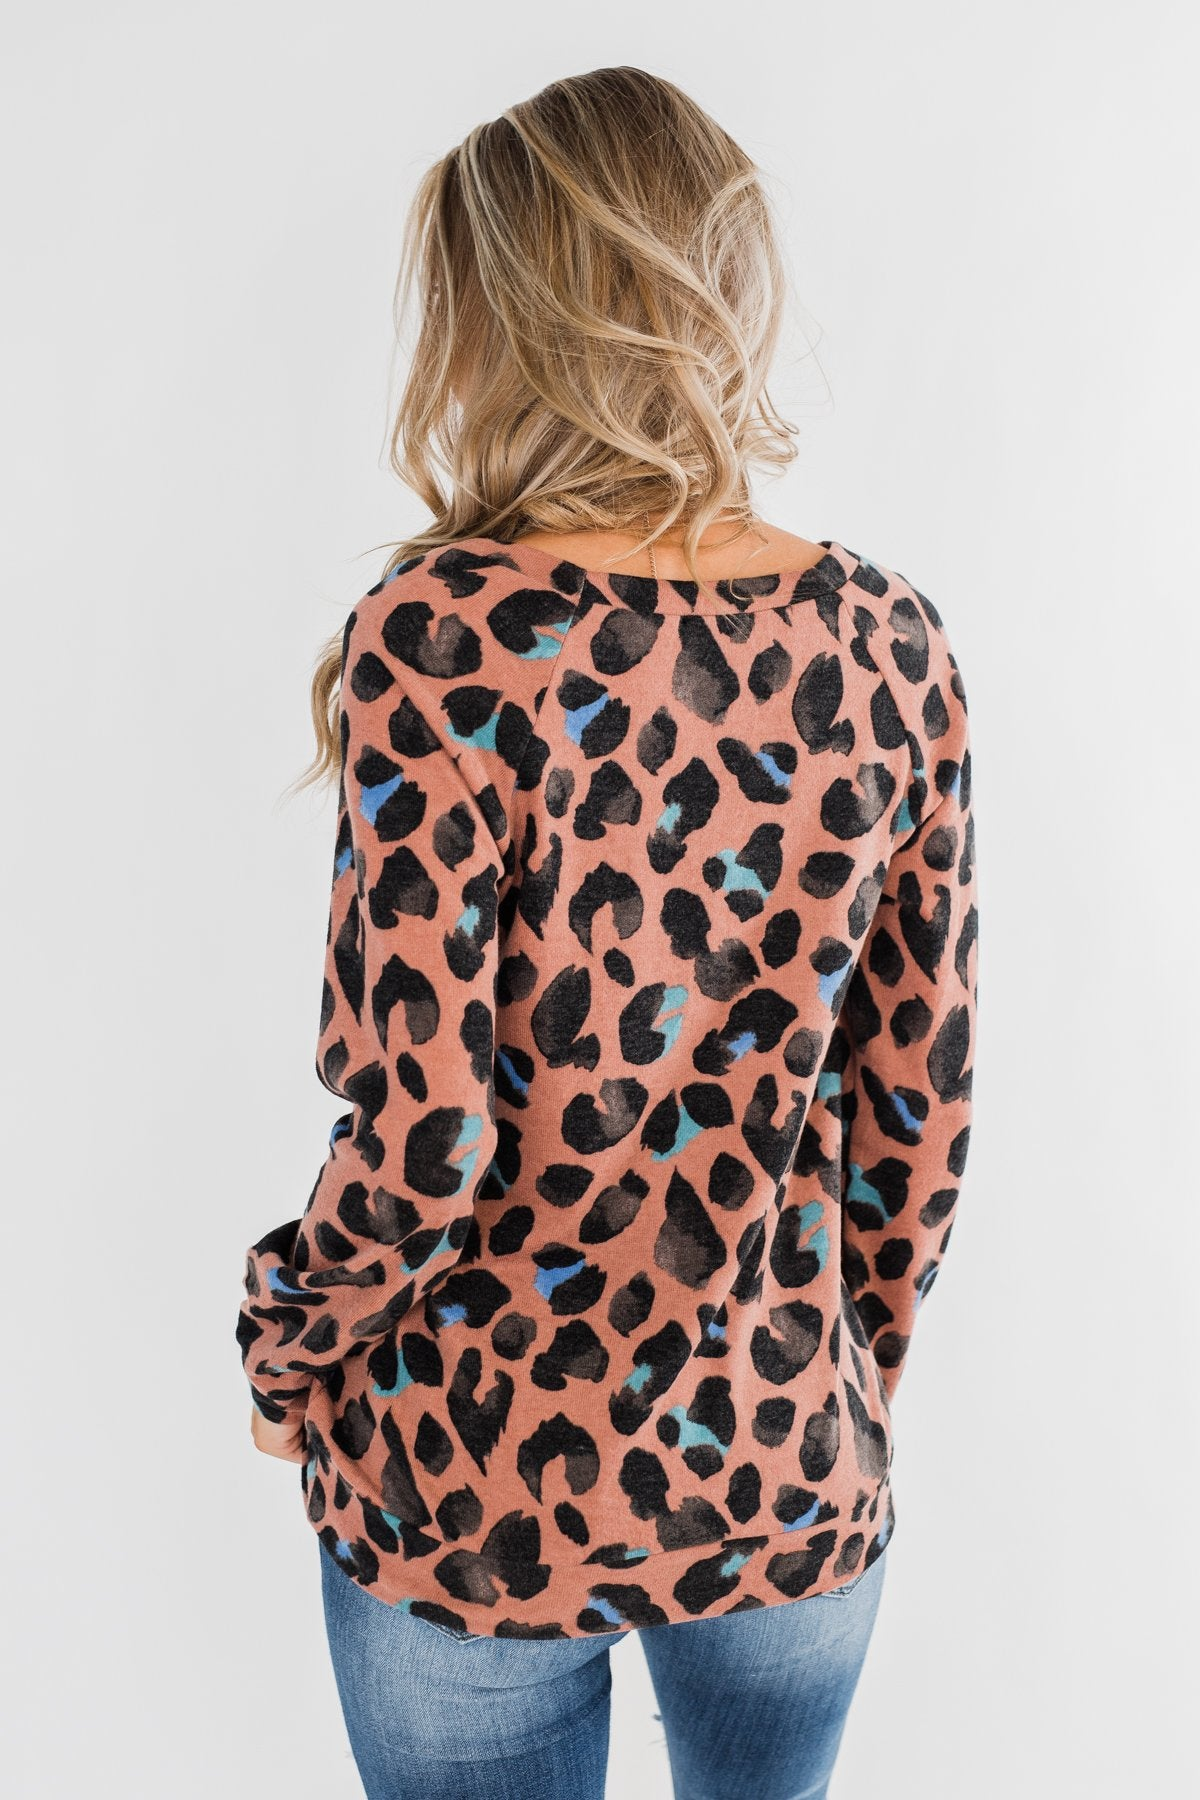 Eyes For Only You Leopard Top- Antique Rust & Black